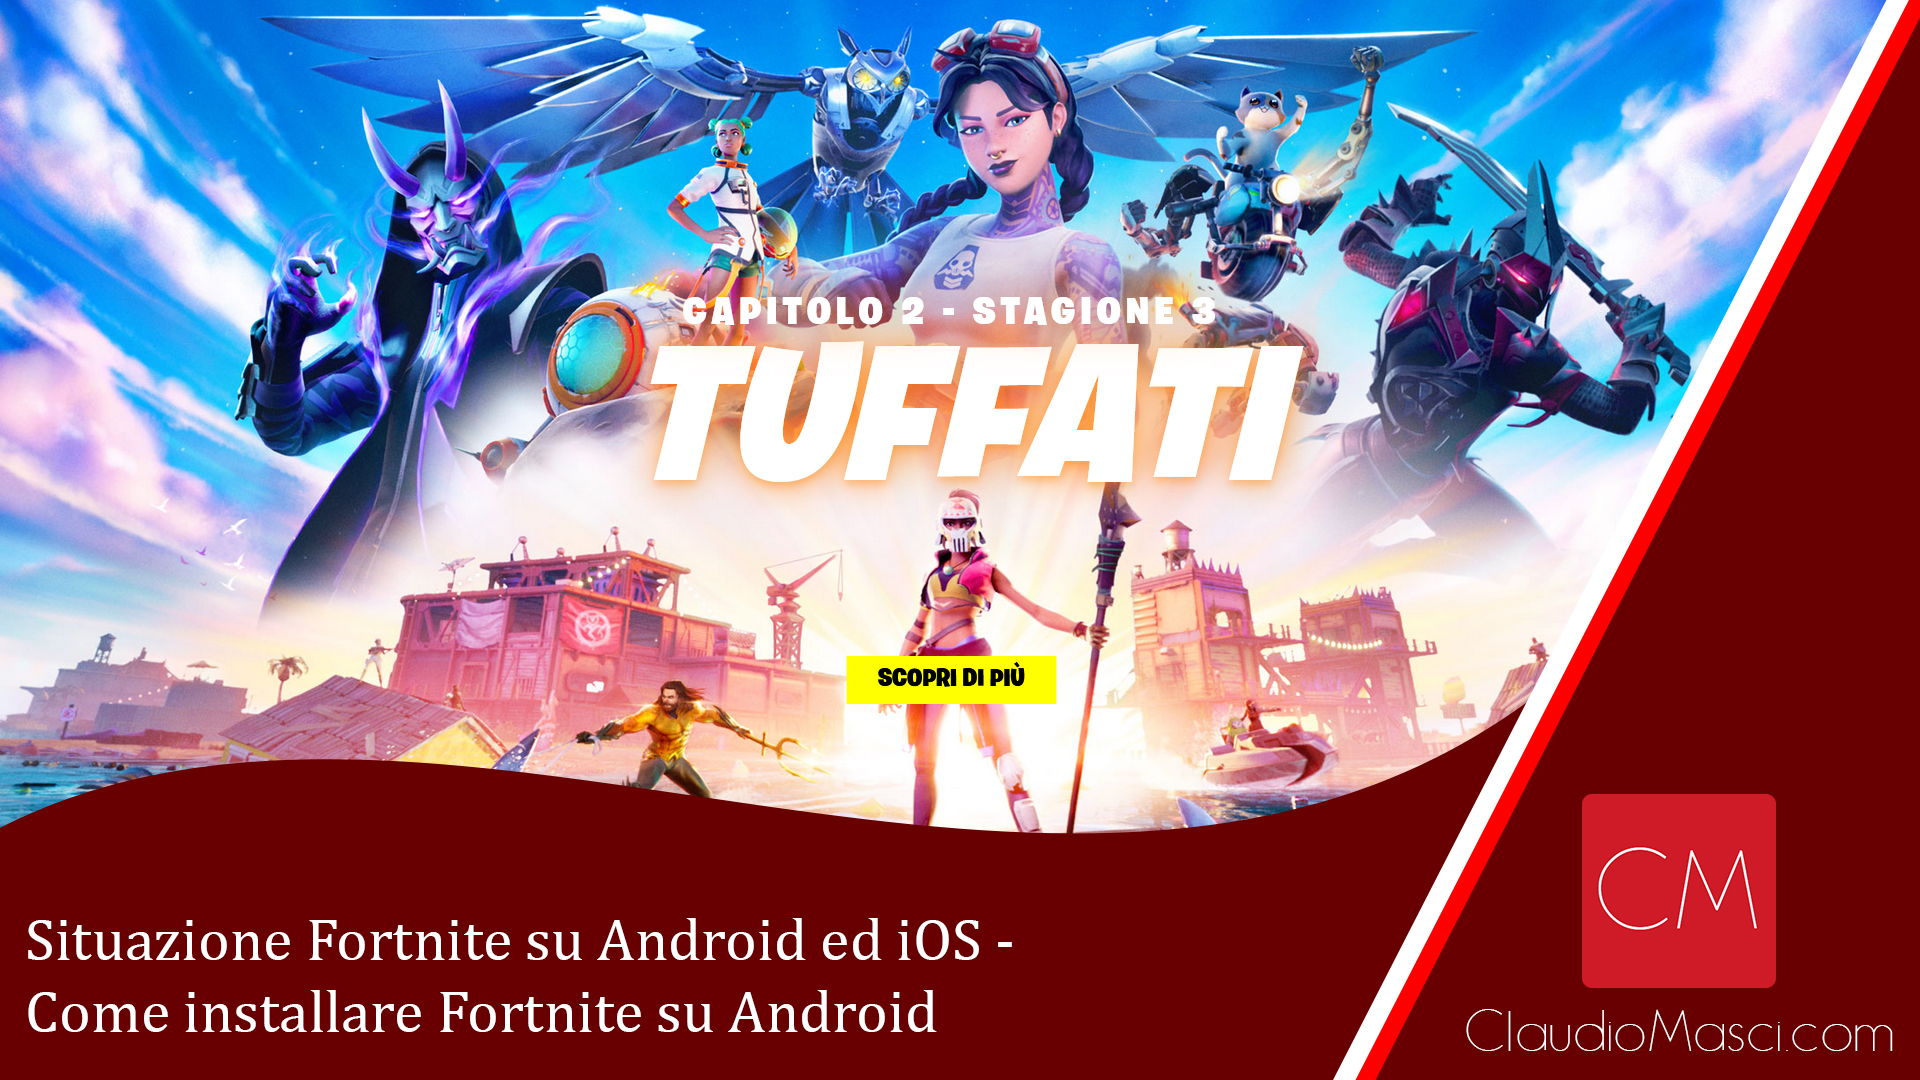 Situazione Fortnite su Android ed iOS – Come installare Fortnite su Android